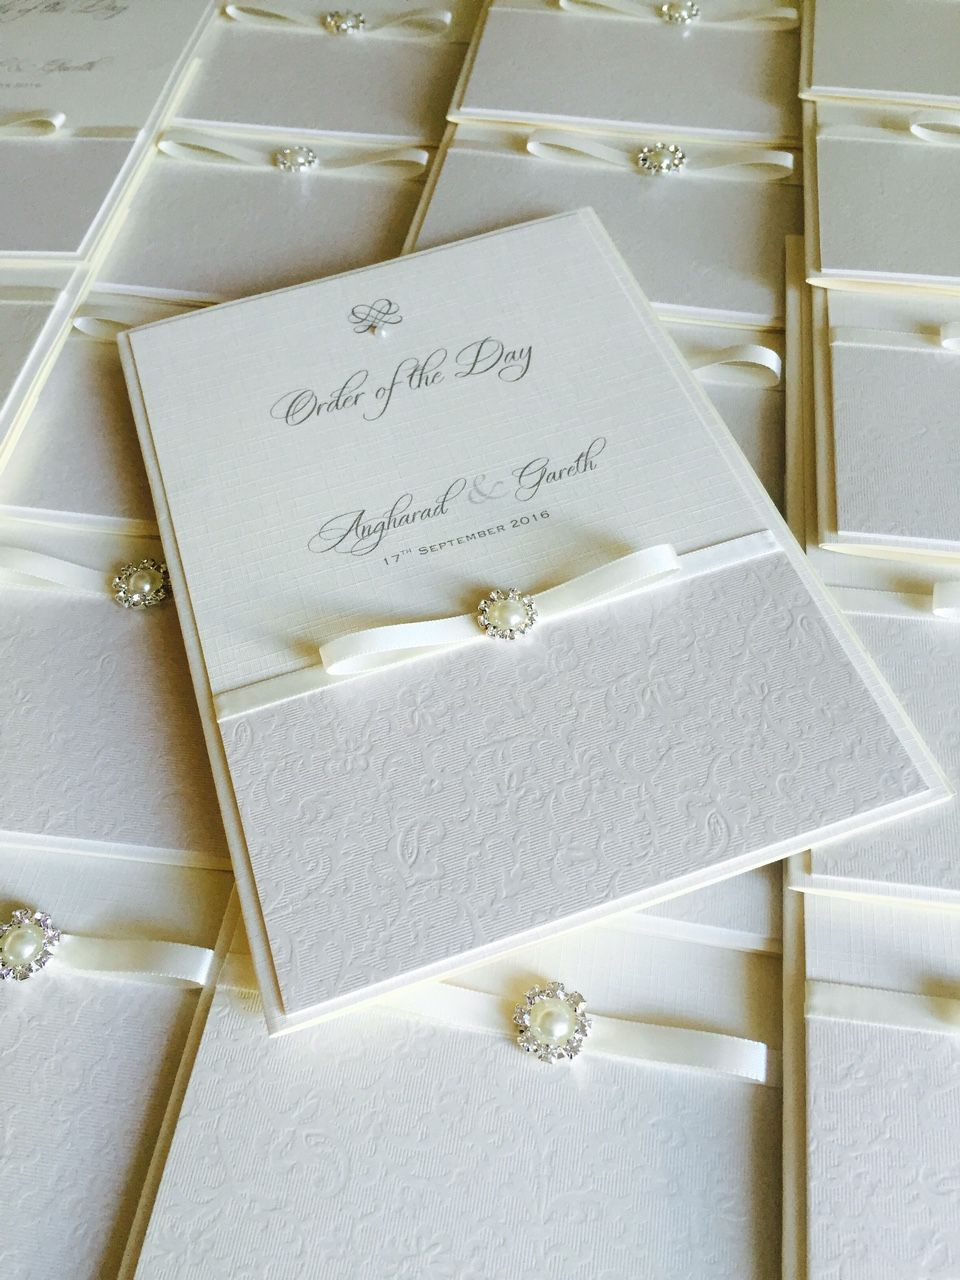 Order of the Day Books for your wedding ceremony